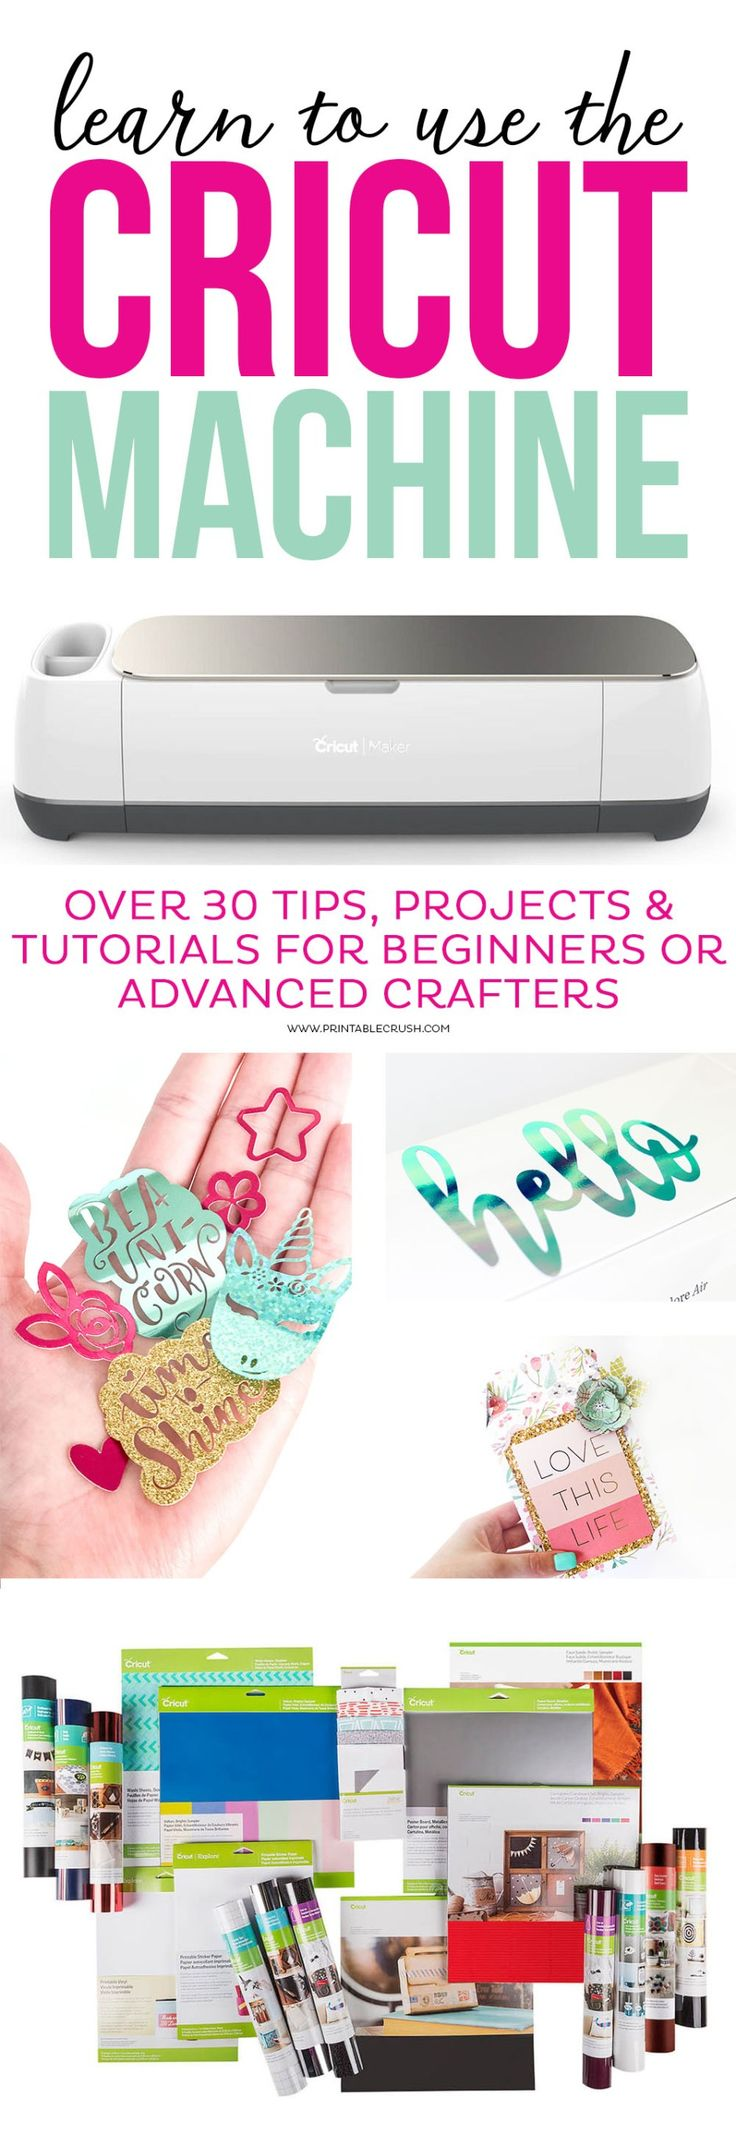 Learn to use the Cricut Machine with over 30 tips, projects, and tutorials for b…